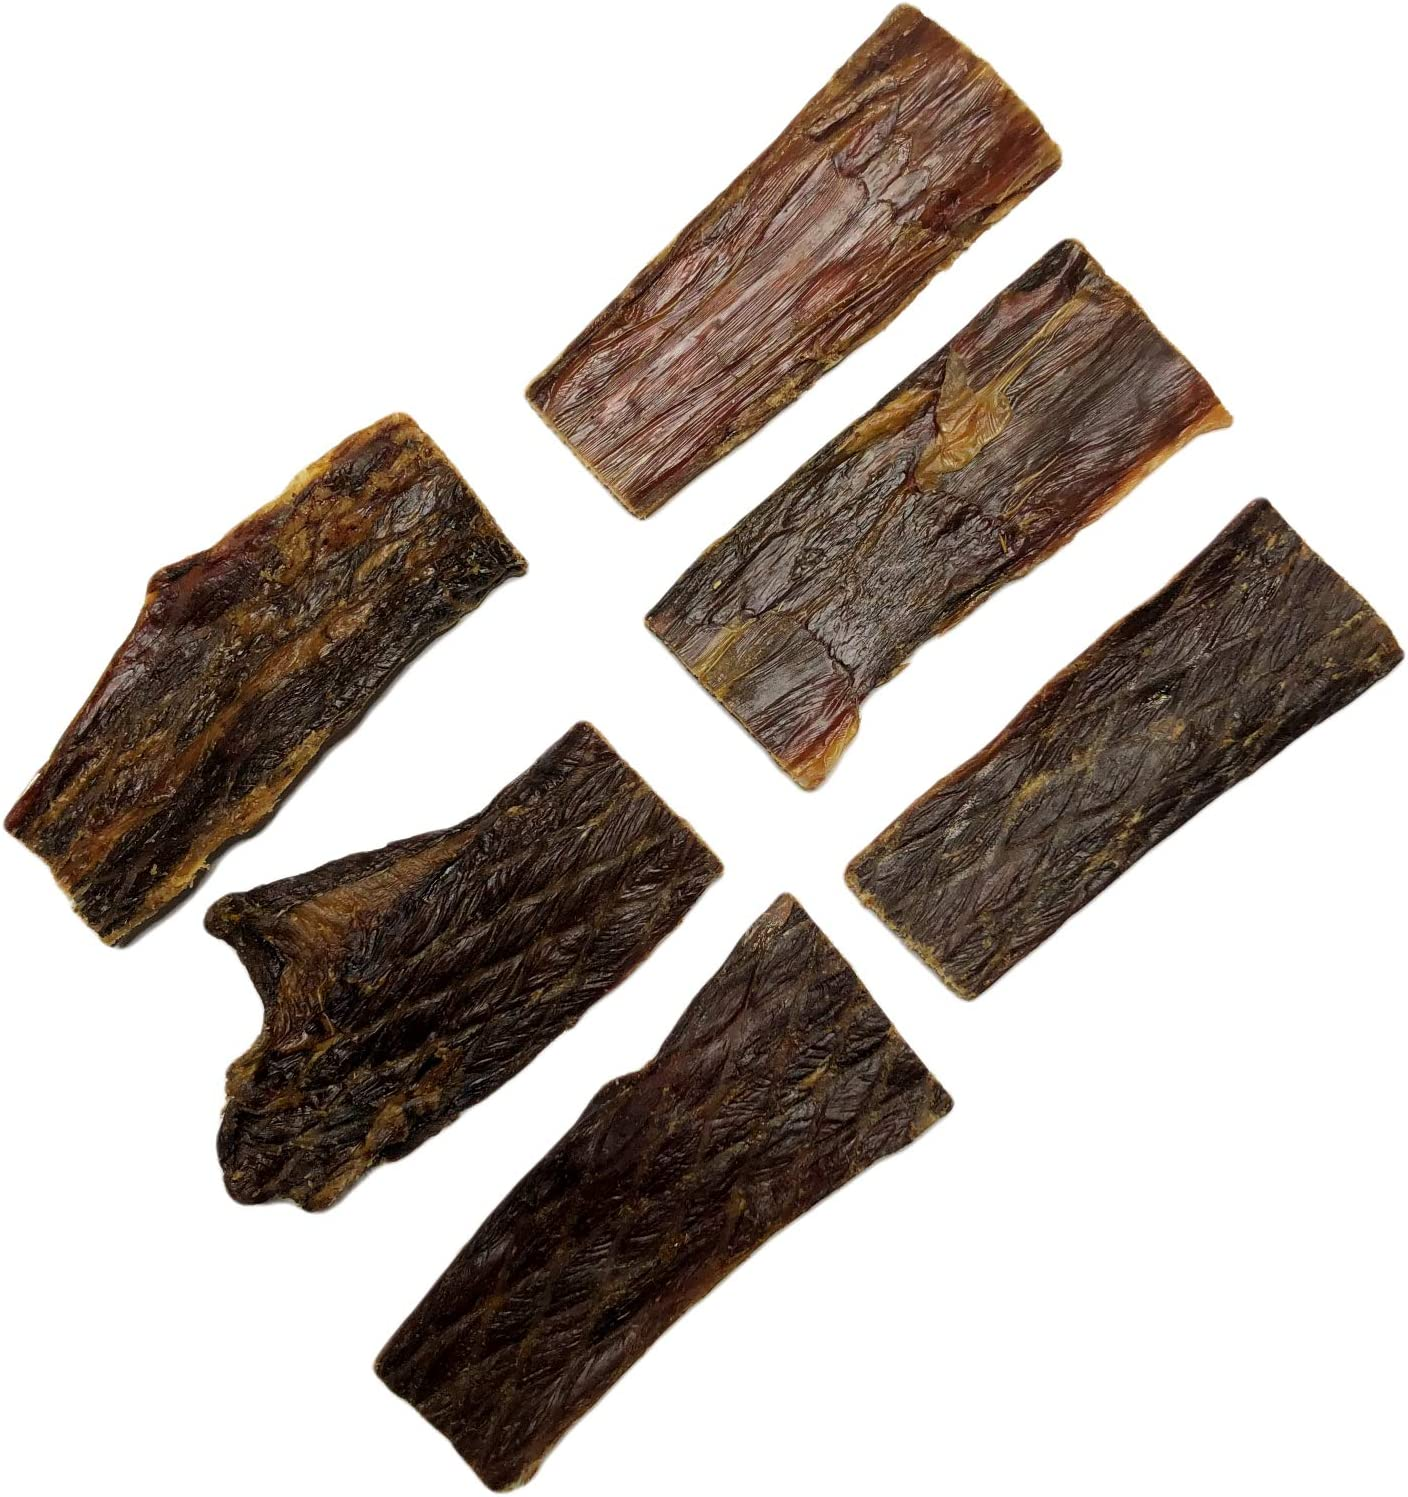 K9 Connoisseur Low to New Orleans Mall Odor Free Dog Regular store Beef Jerky M Dogs for Strips